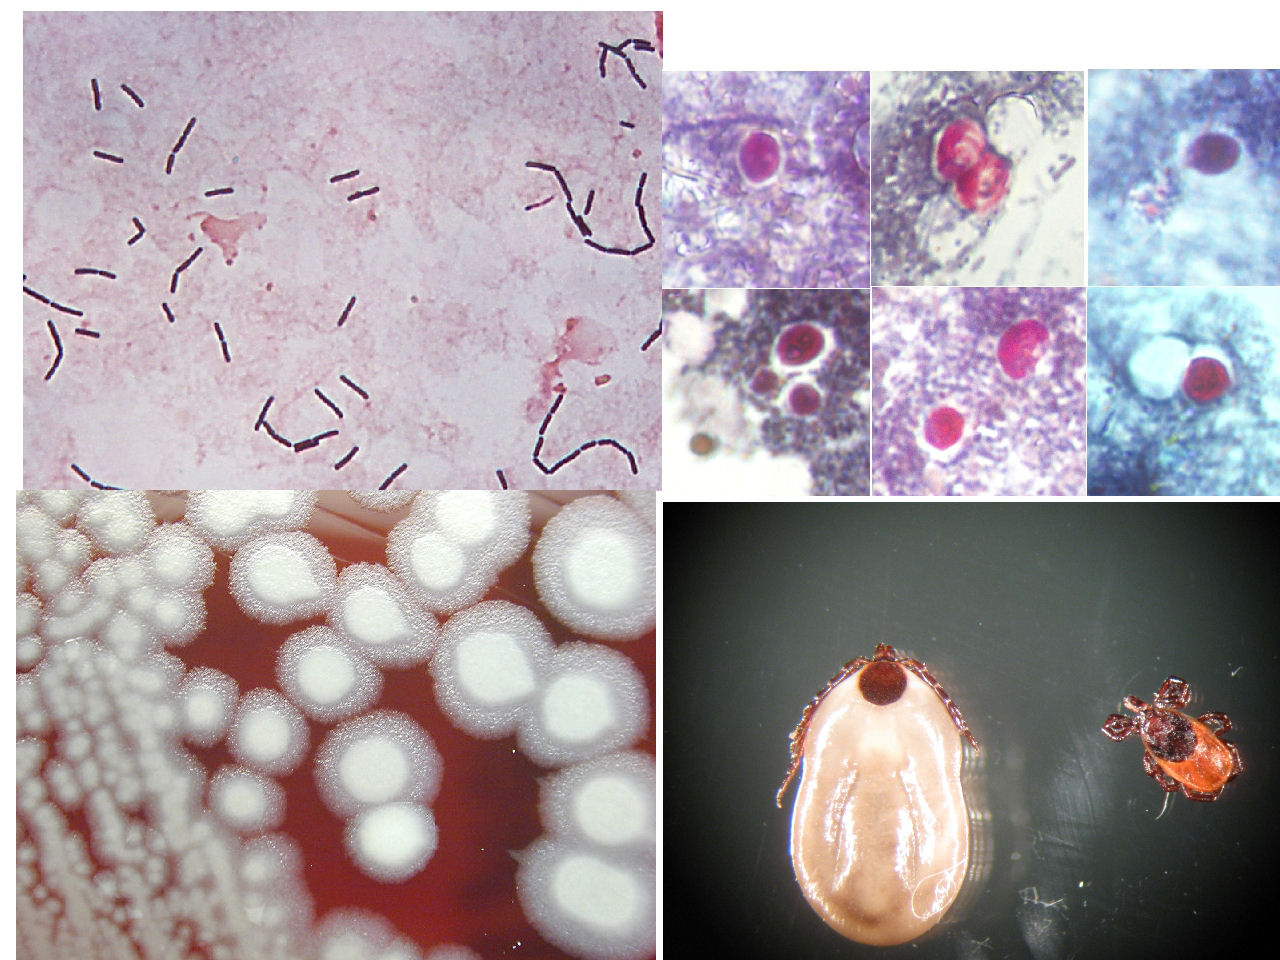 PEDIATRICS: GENERAL MEDICINE ARTICLES ON PARASITOLOGY